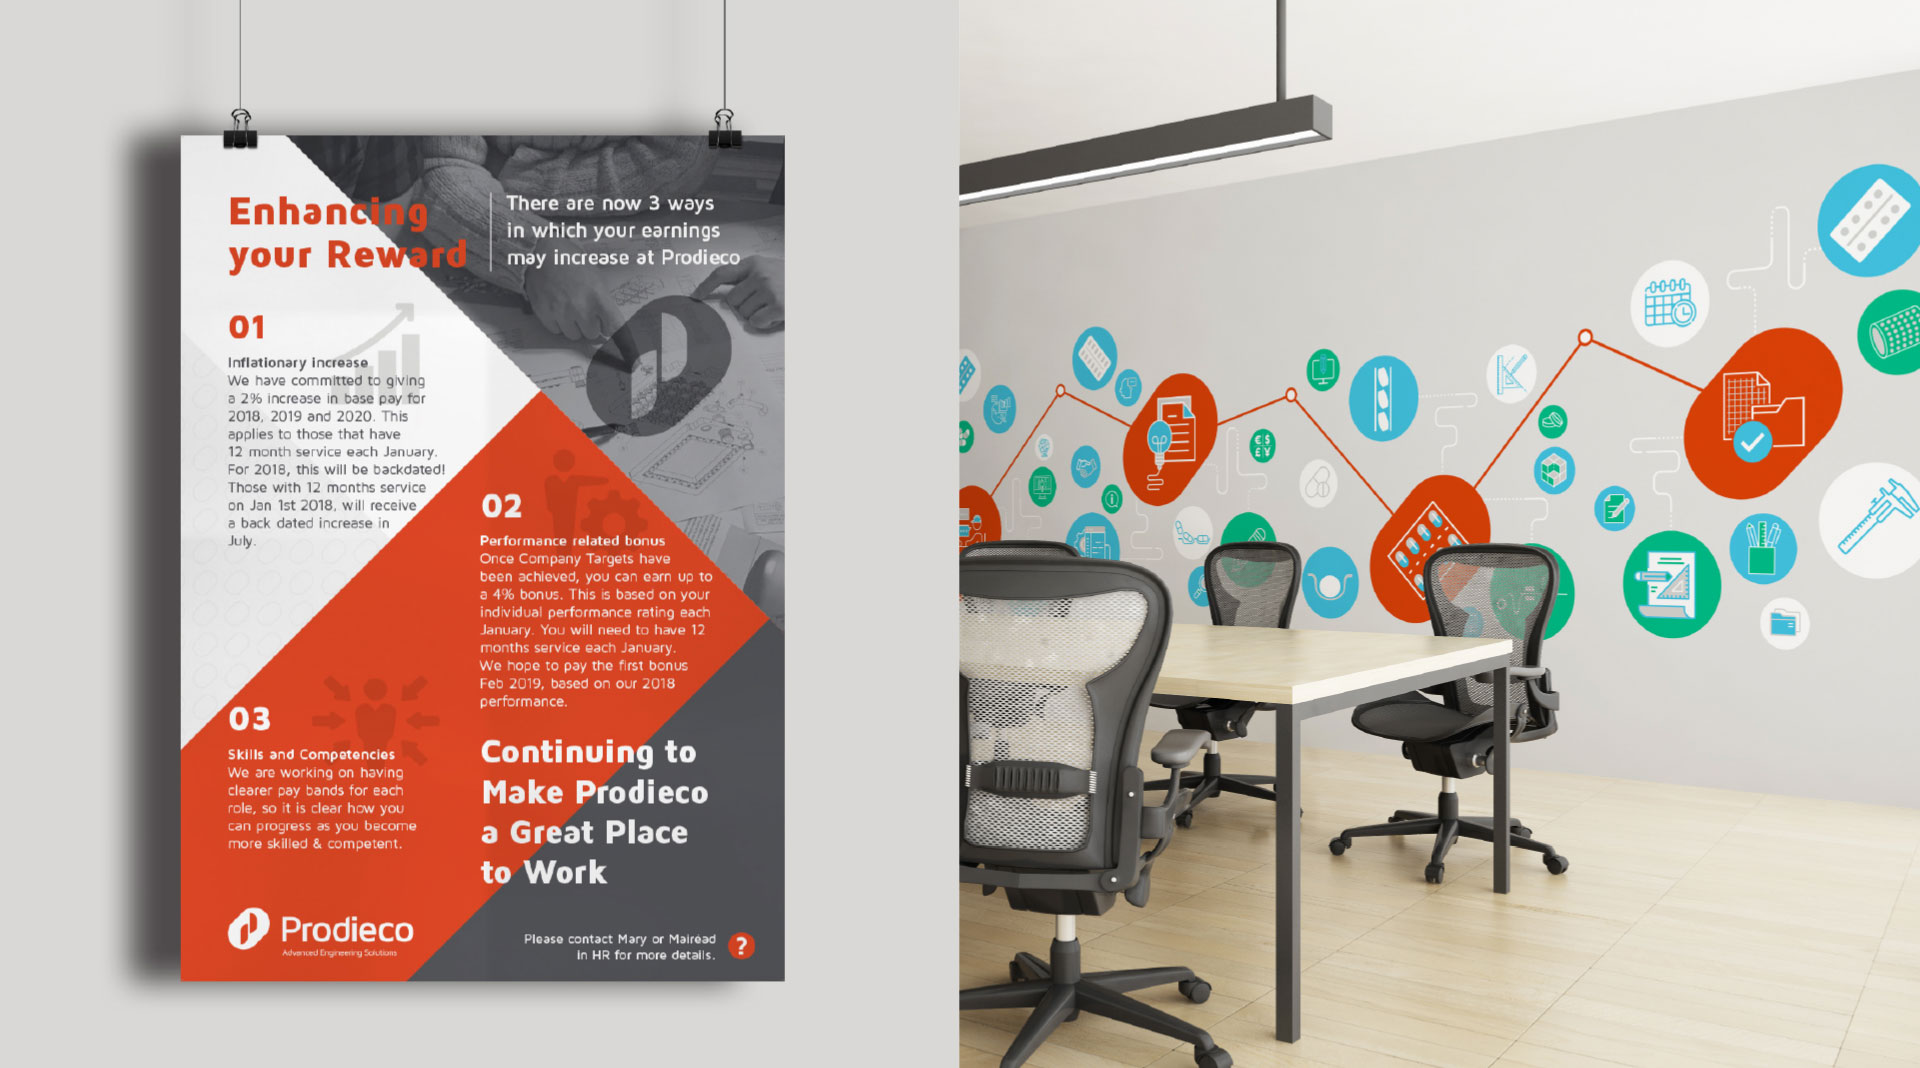 Prodieco poster and infographic design.